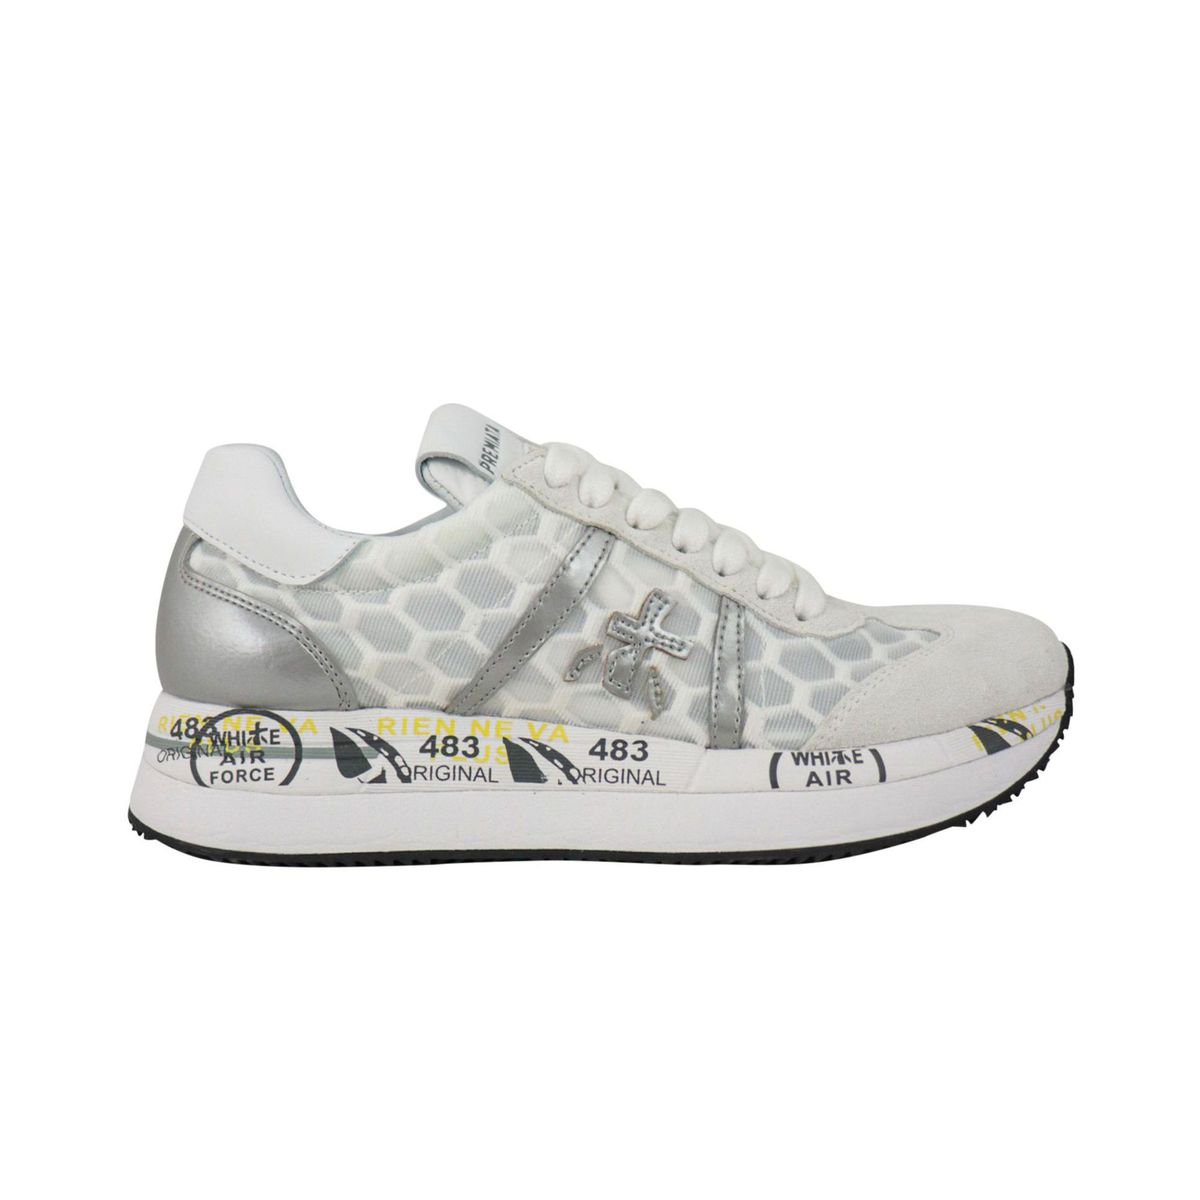 Conny sneakers in leather and printed fabric White / gray Premiata